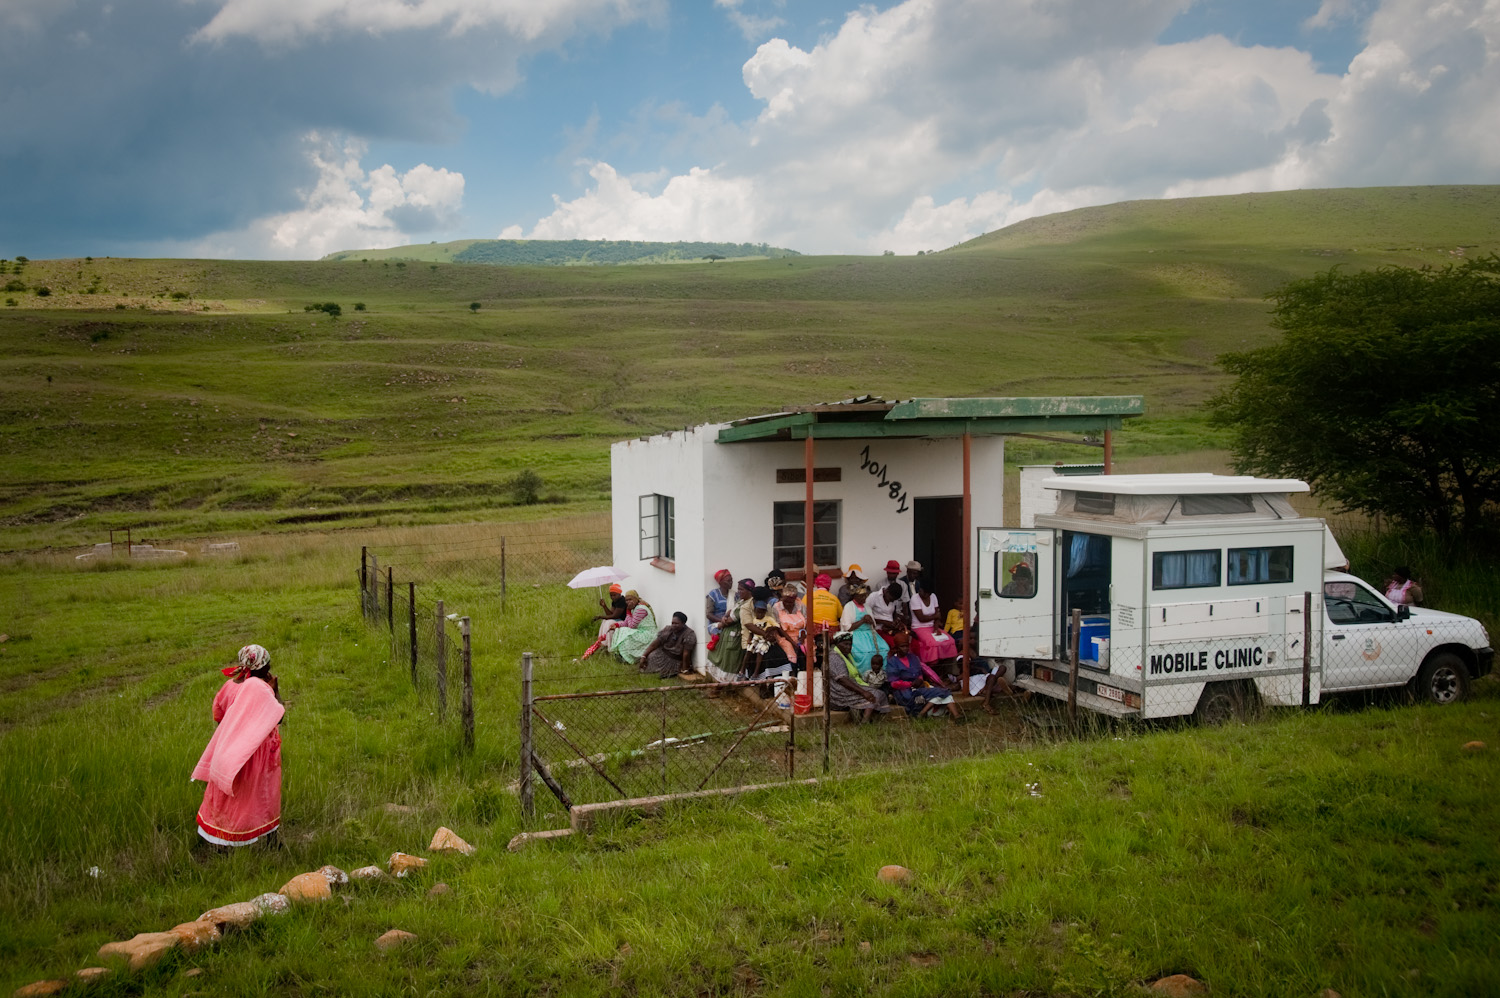 """Mobile Clinics"" portrays the daily life of the health care professionals and the Zulu communities they serve from distant hard-to-reach huts to garages-turned-clinics to prisons. These images were created over the course of several weeks in KwaZulu-Natal province, South Africa."